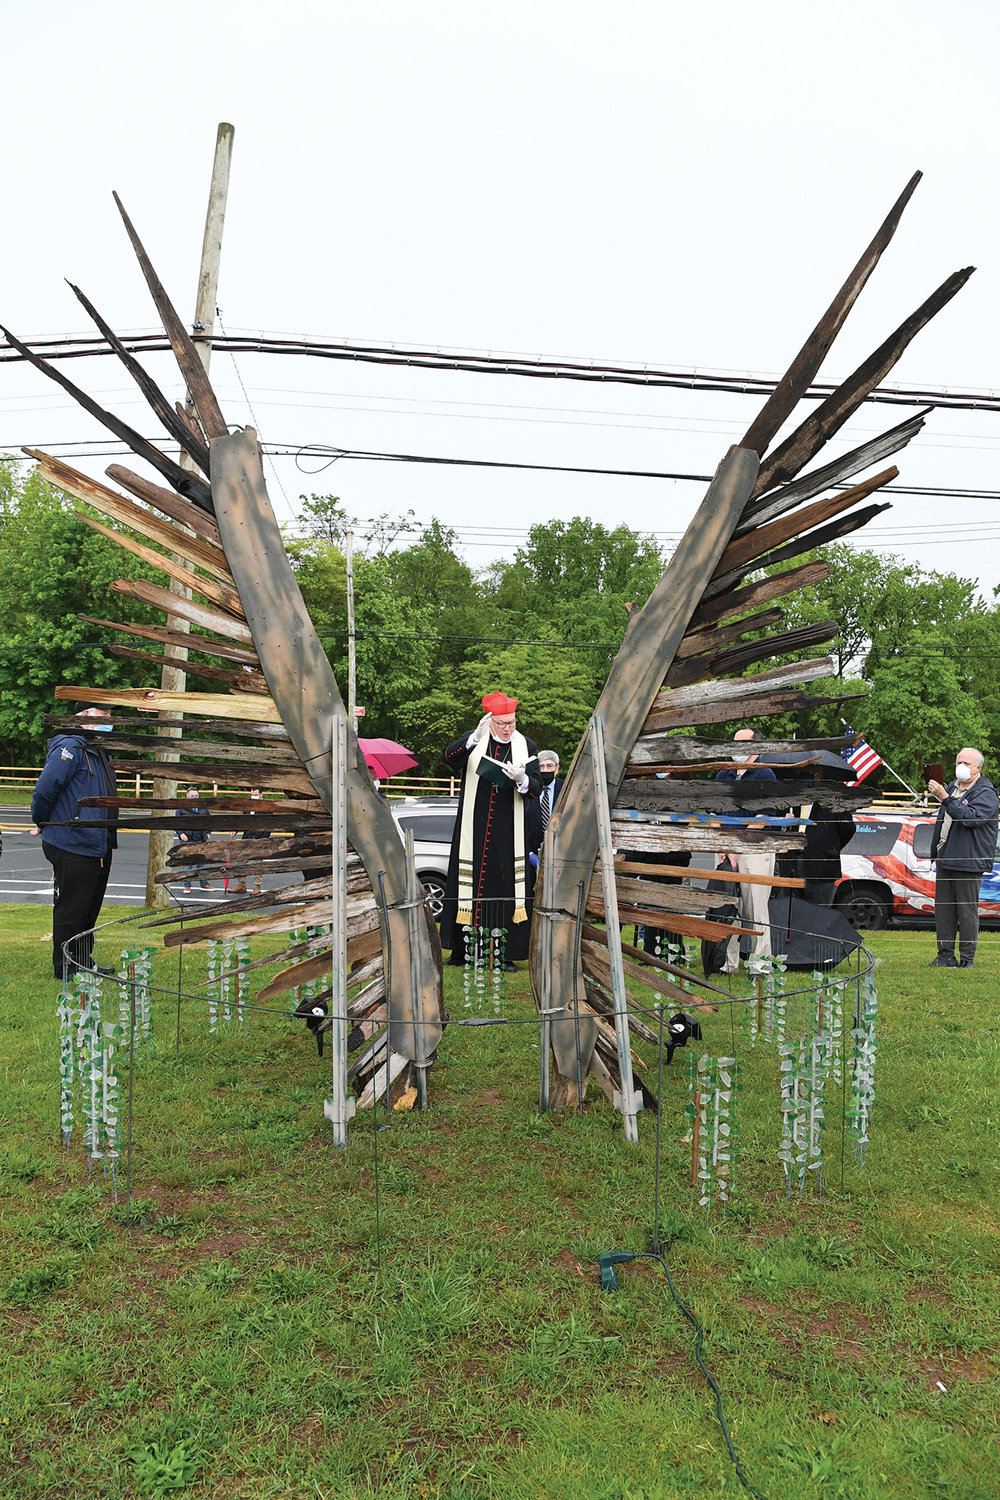 Cardinal Dolan blesses the 942 Voices sculpture at Mount Loretto on Staten Island May 23. The sculpture honors Staten Islanders who have lost their lives during the coronavirus pandemic, including two residents of Mount Loretto residential care facility.